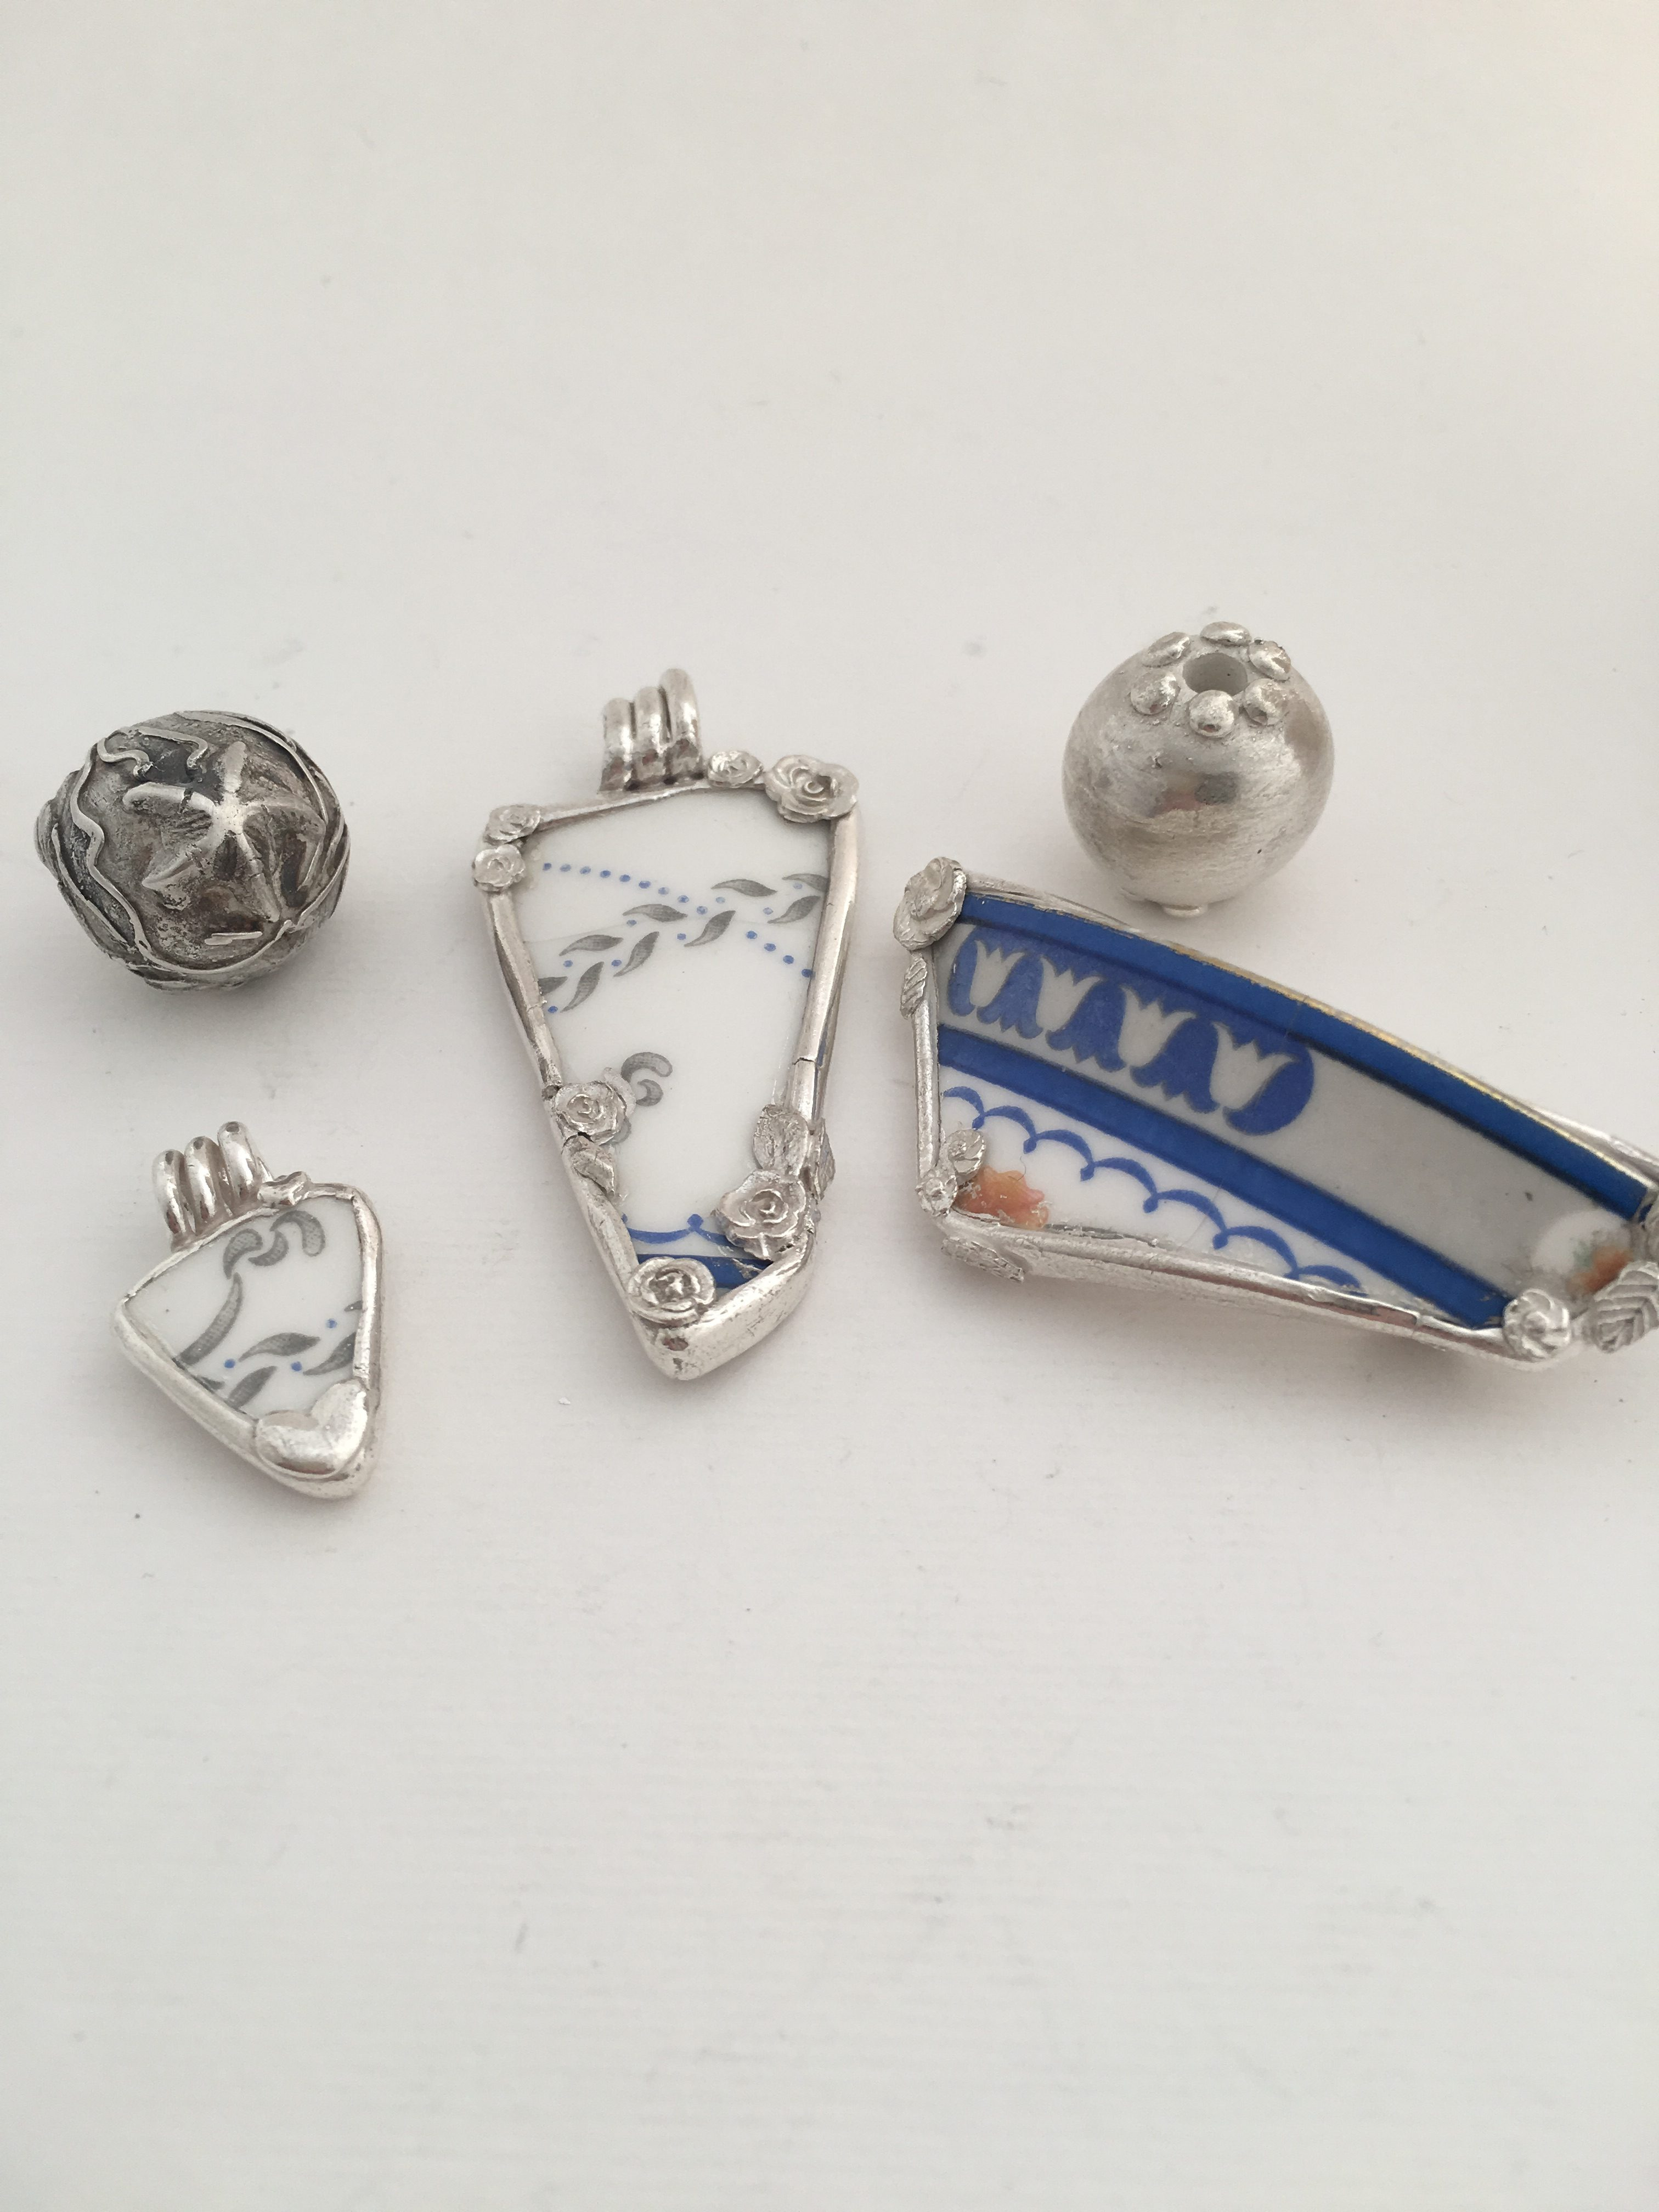 Pmc Extended Pmc Certification Module 2 Silver And Stone Jewellery